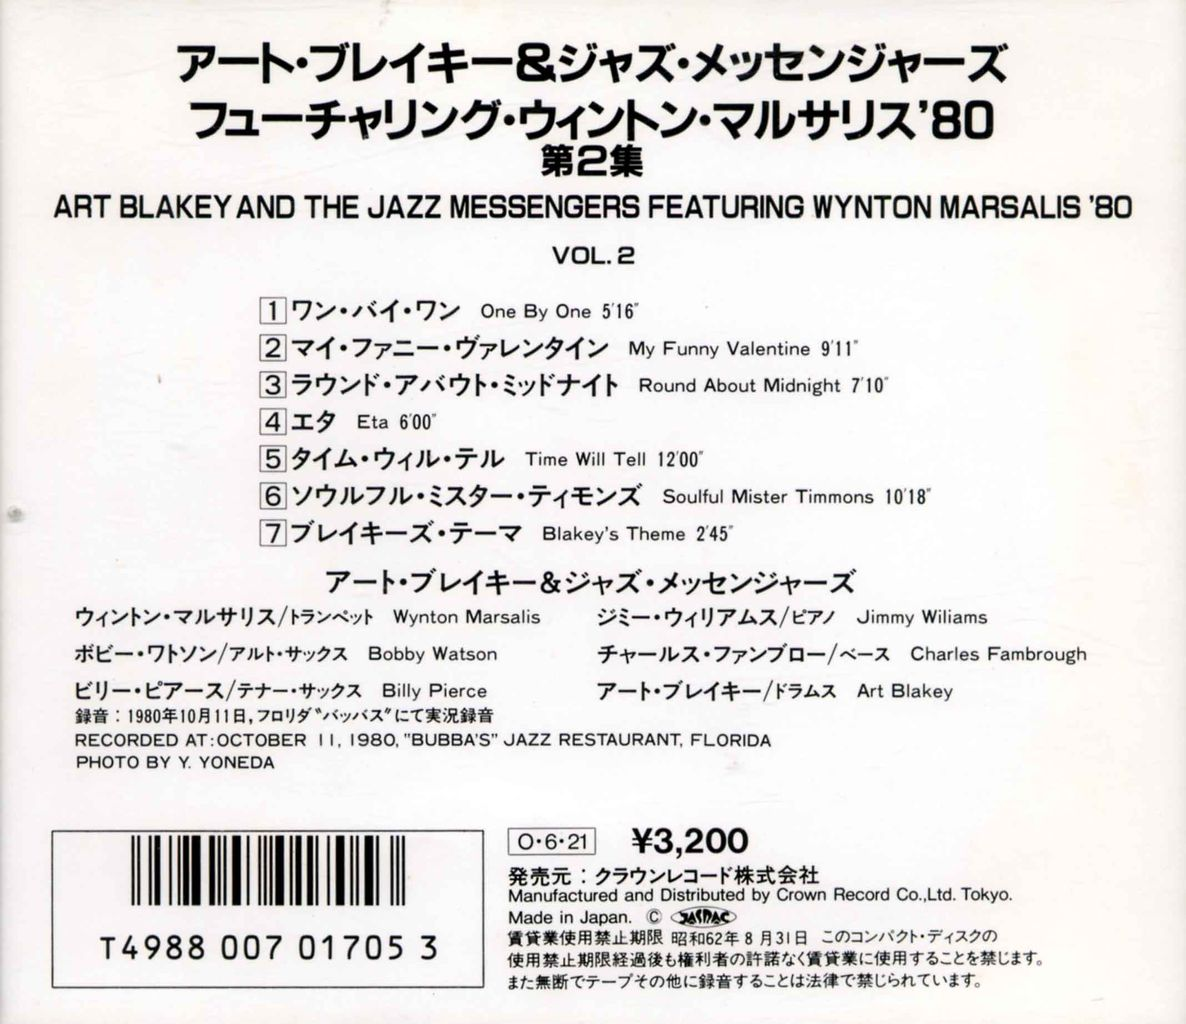 FEATURING WYNTON MARSALIS '80 VOL.2-2